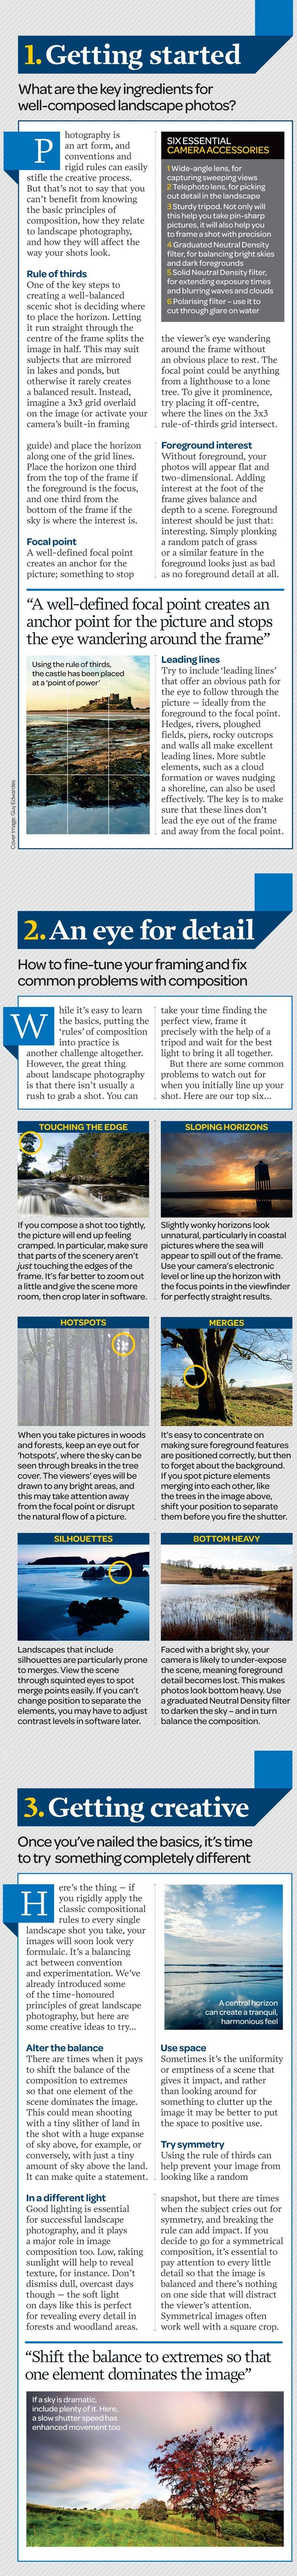 Landscape photography from idea to execution: free photography cheat sheet | Digital Camera World